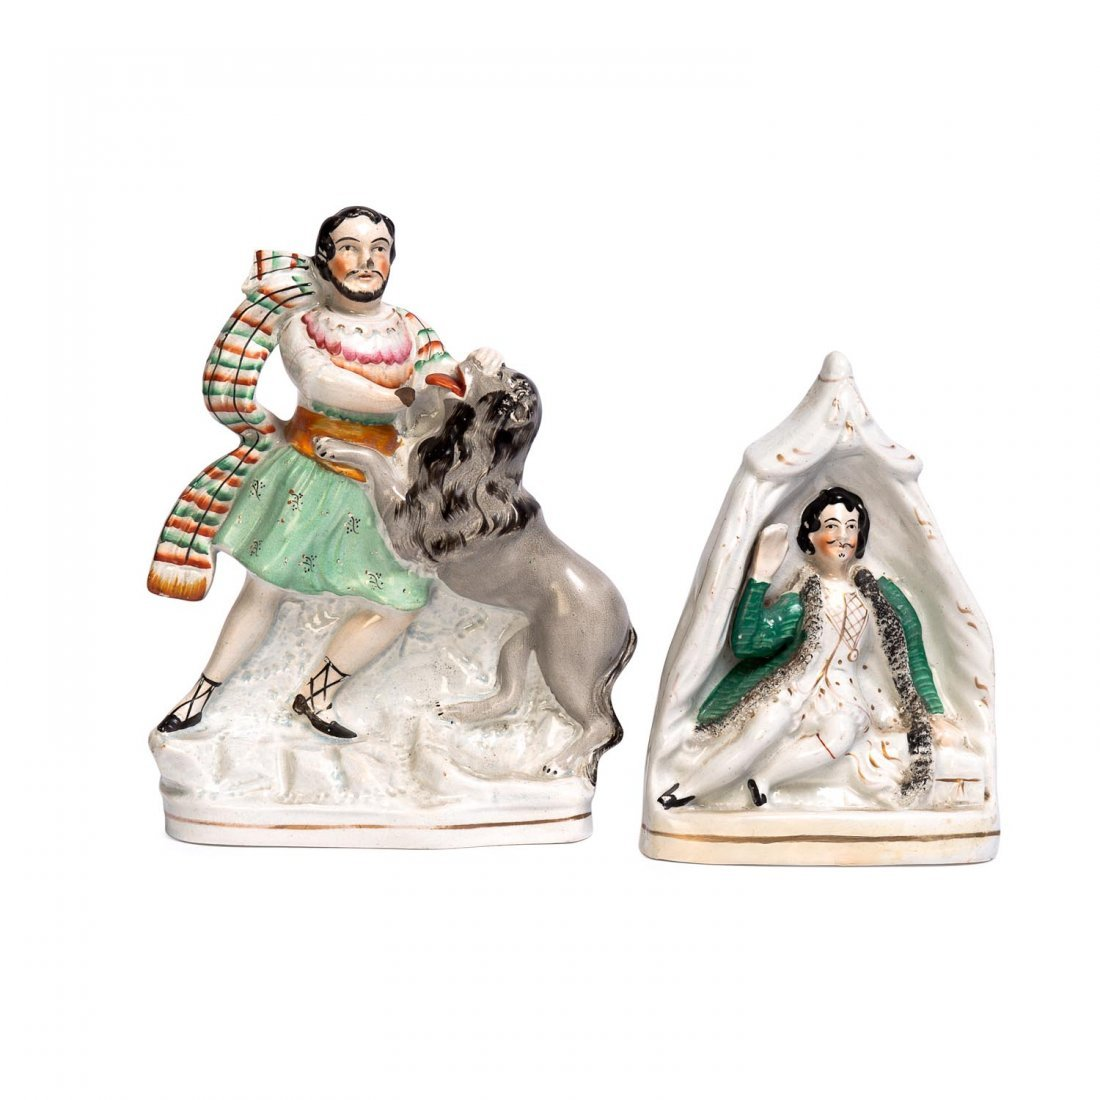 A Staffordshire portrait figure of Shakespeare's